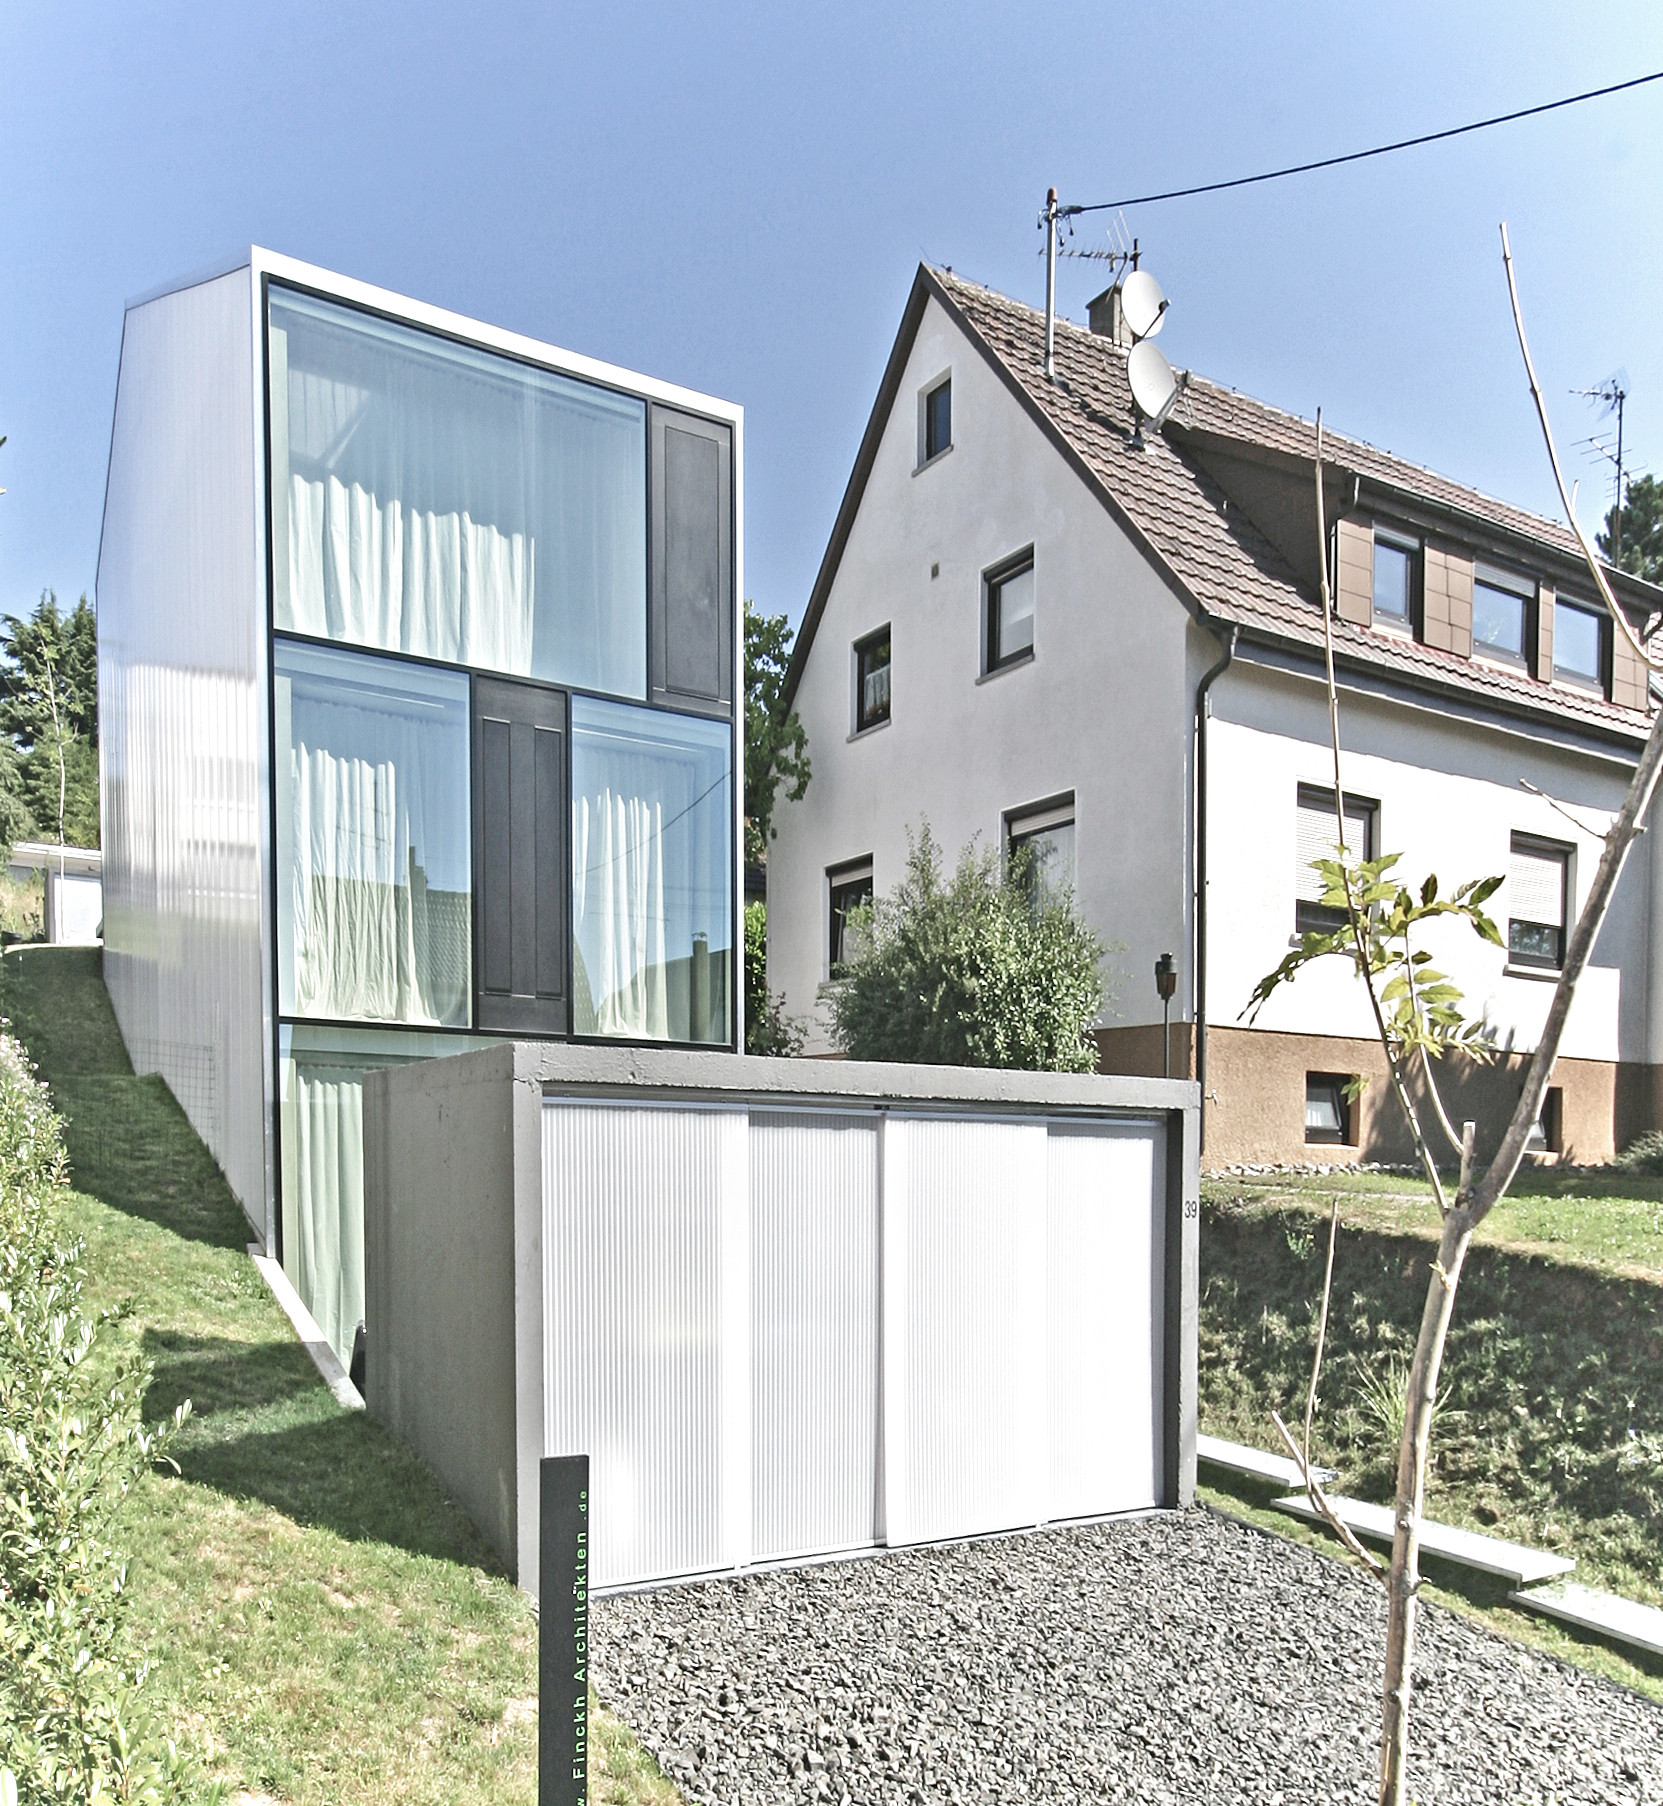 House F / Finckh Architekten, Courtesy of Finckh Architekten